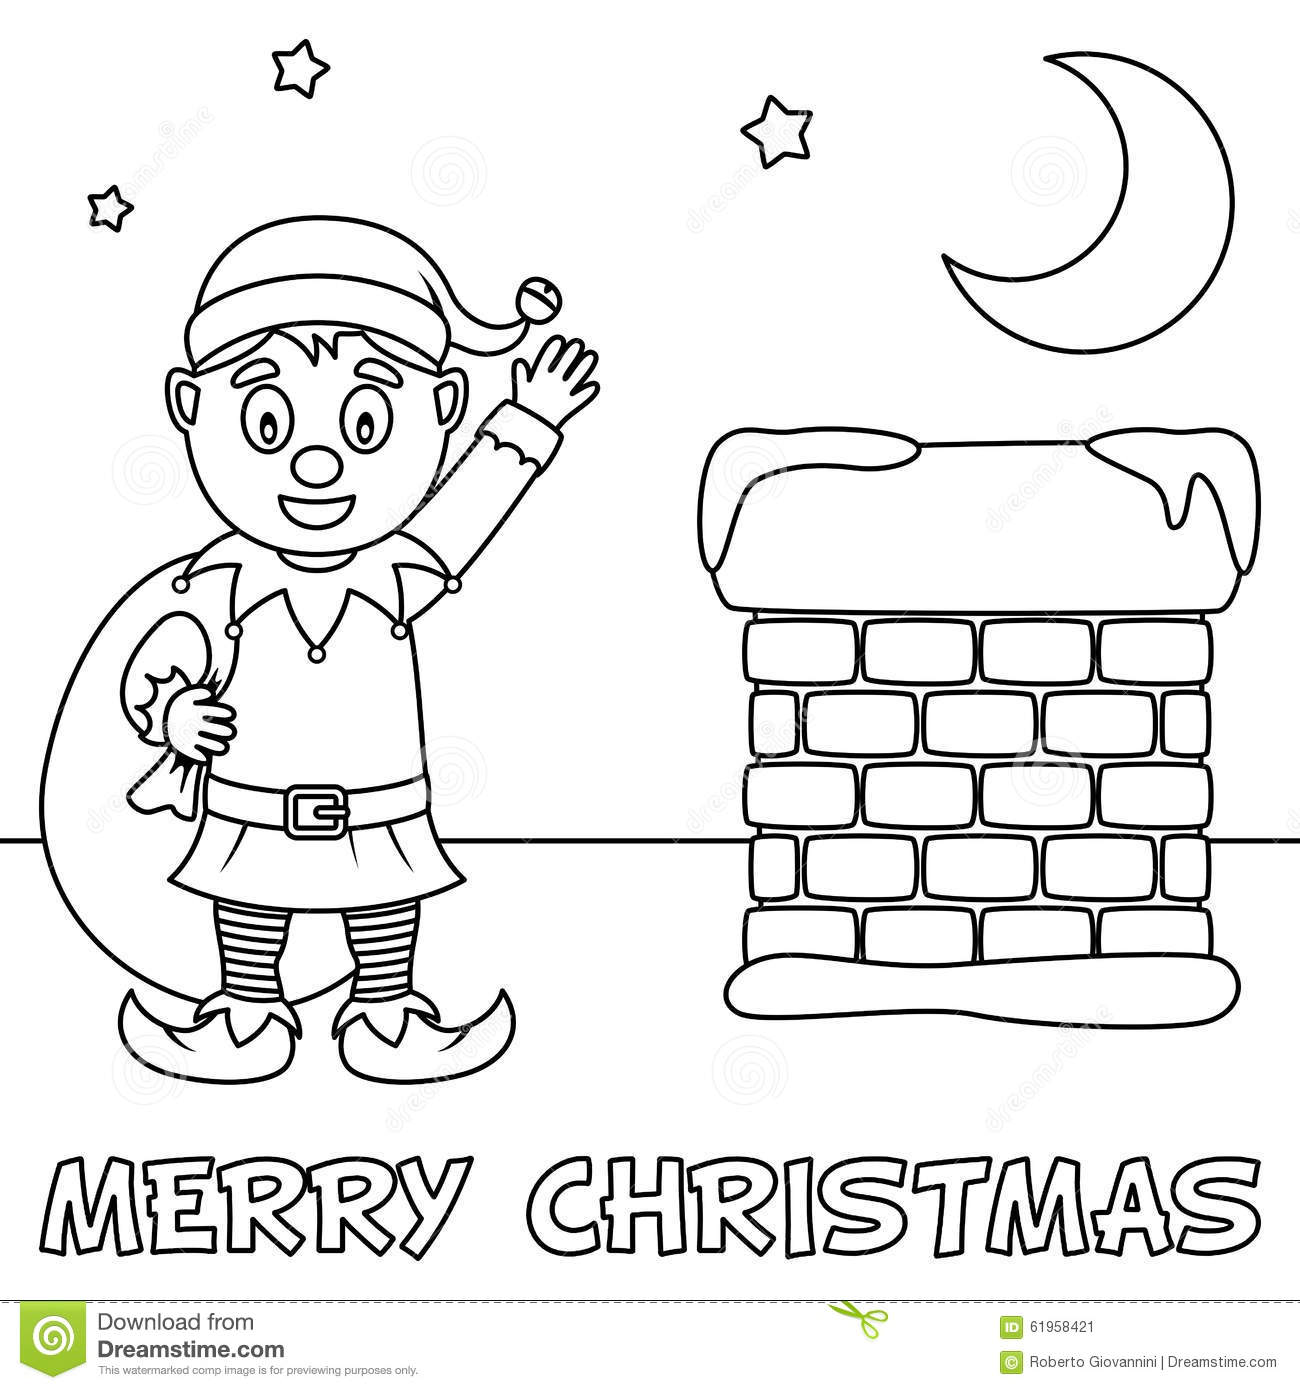 Coloring Christmas Card With Cute